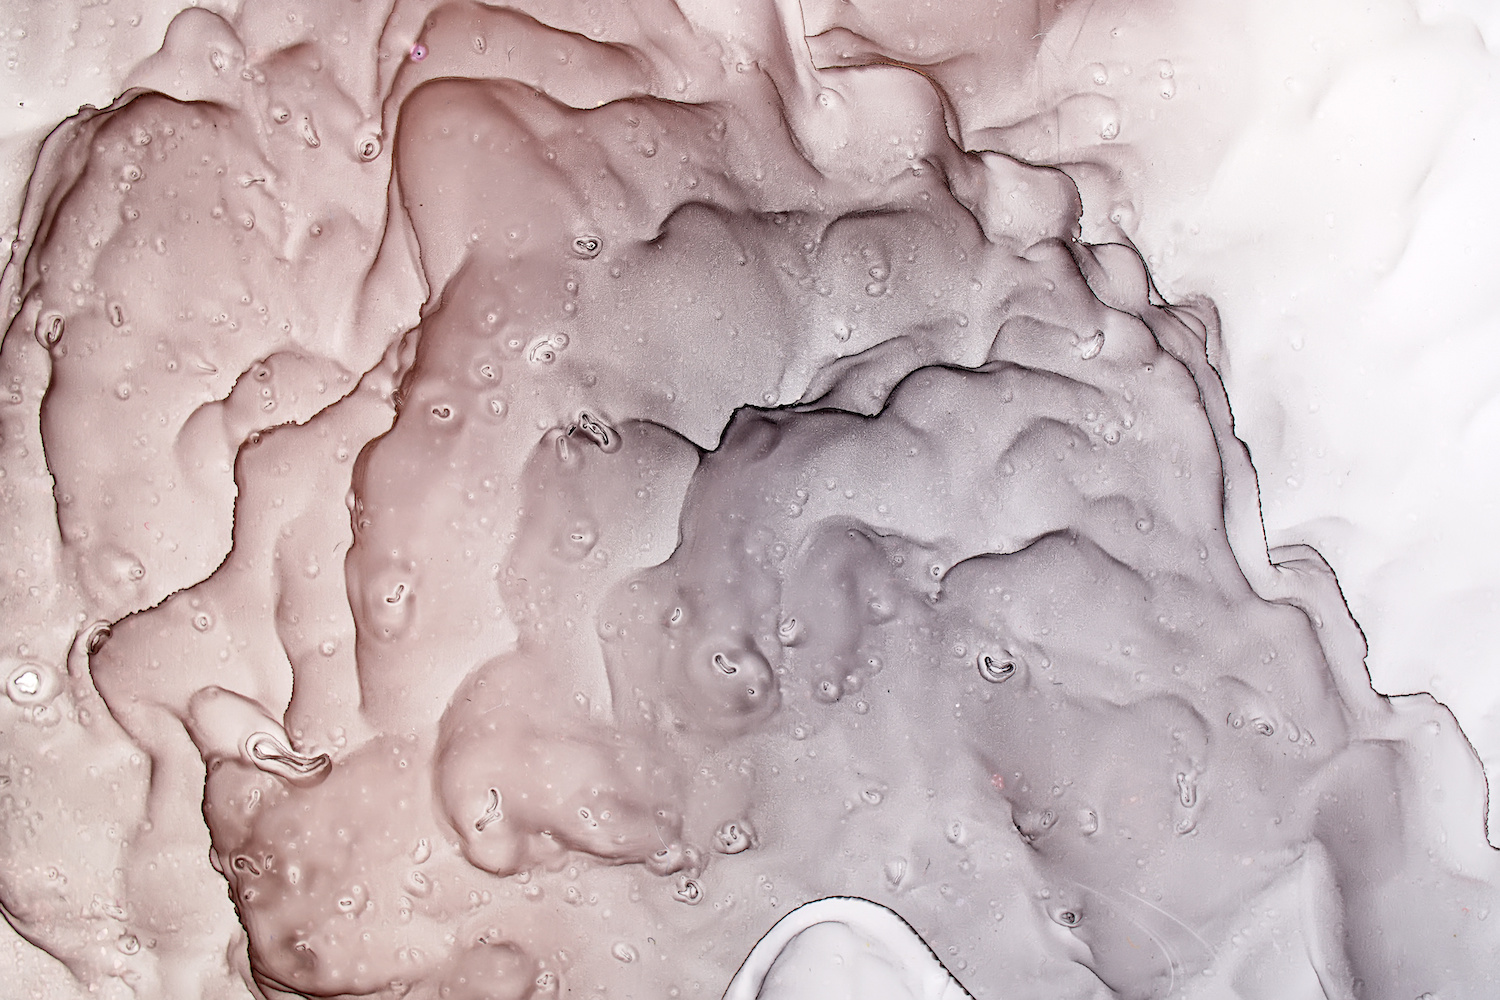 TerraSlate Paper 7 Mil 8.5 x 11 Alcohol Ink Art Paper 25 Sheets